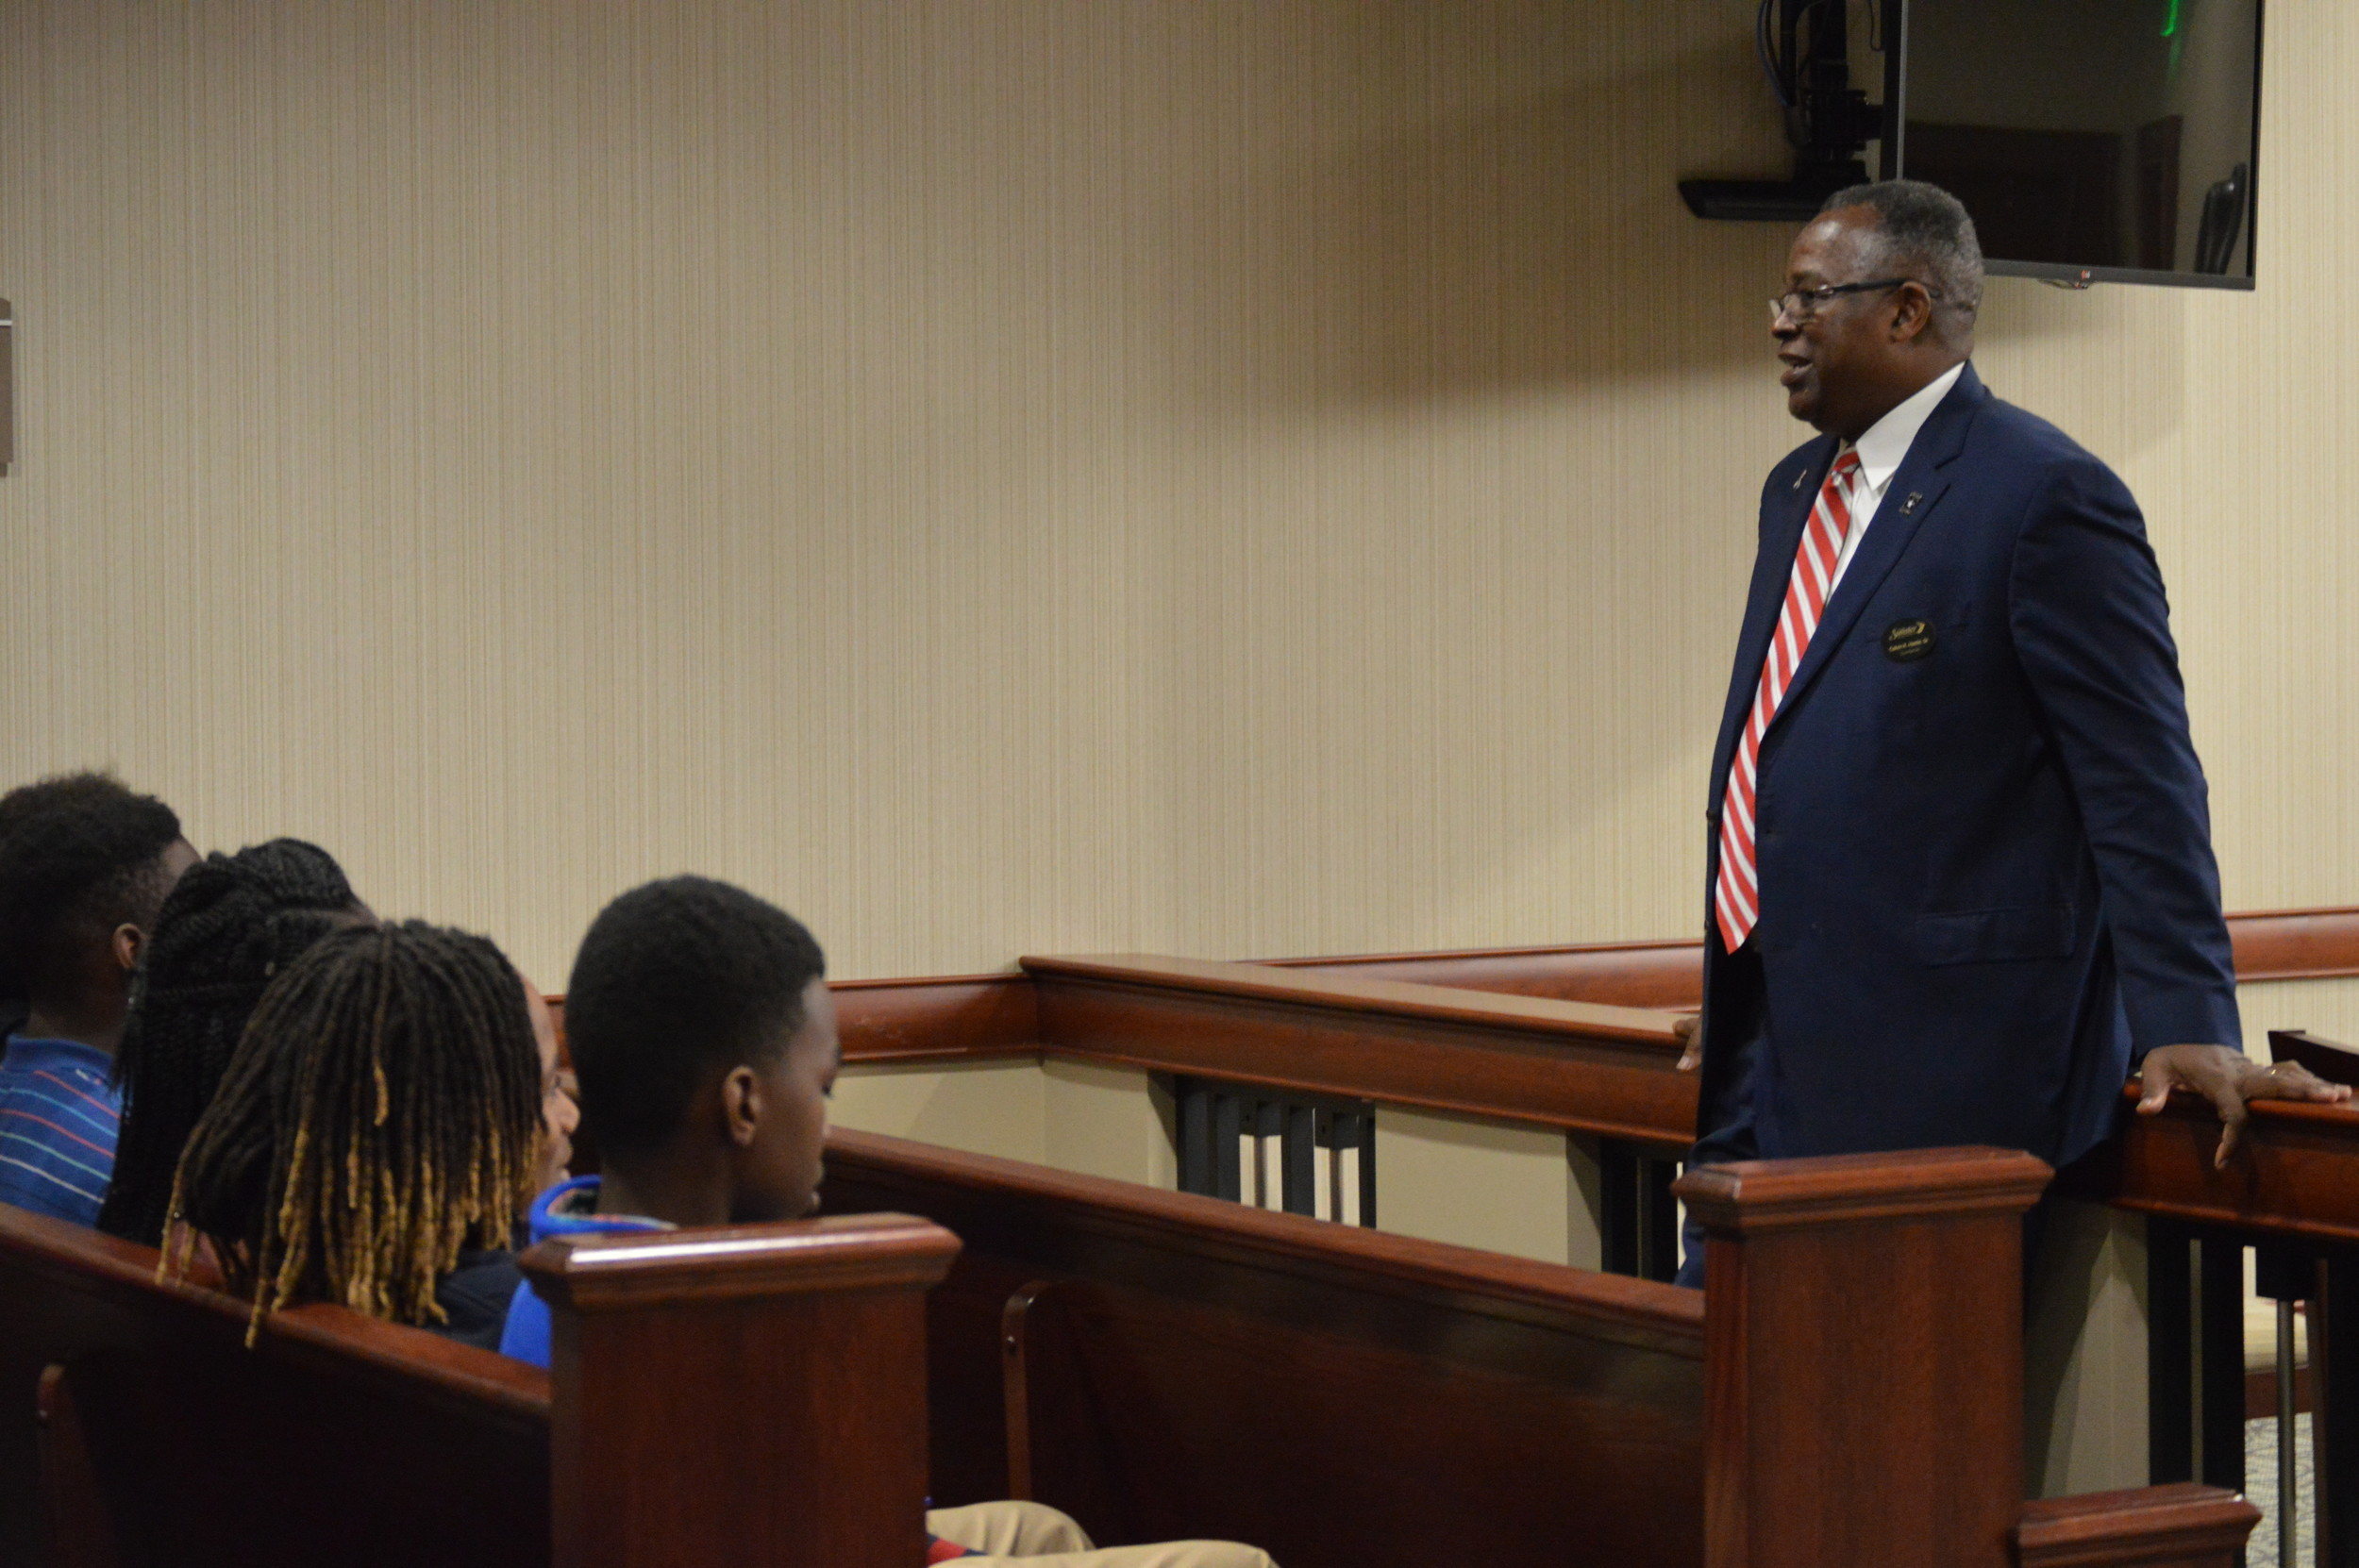 Public defender Calvin Hastie speaks with a class of seventh- and eighth-grade students from Alice Drive Middle School before a trail regarding a juvenile at Sumter County Judicial Center on Thursday.